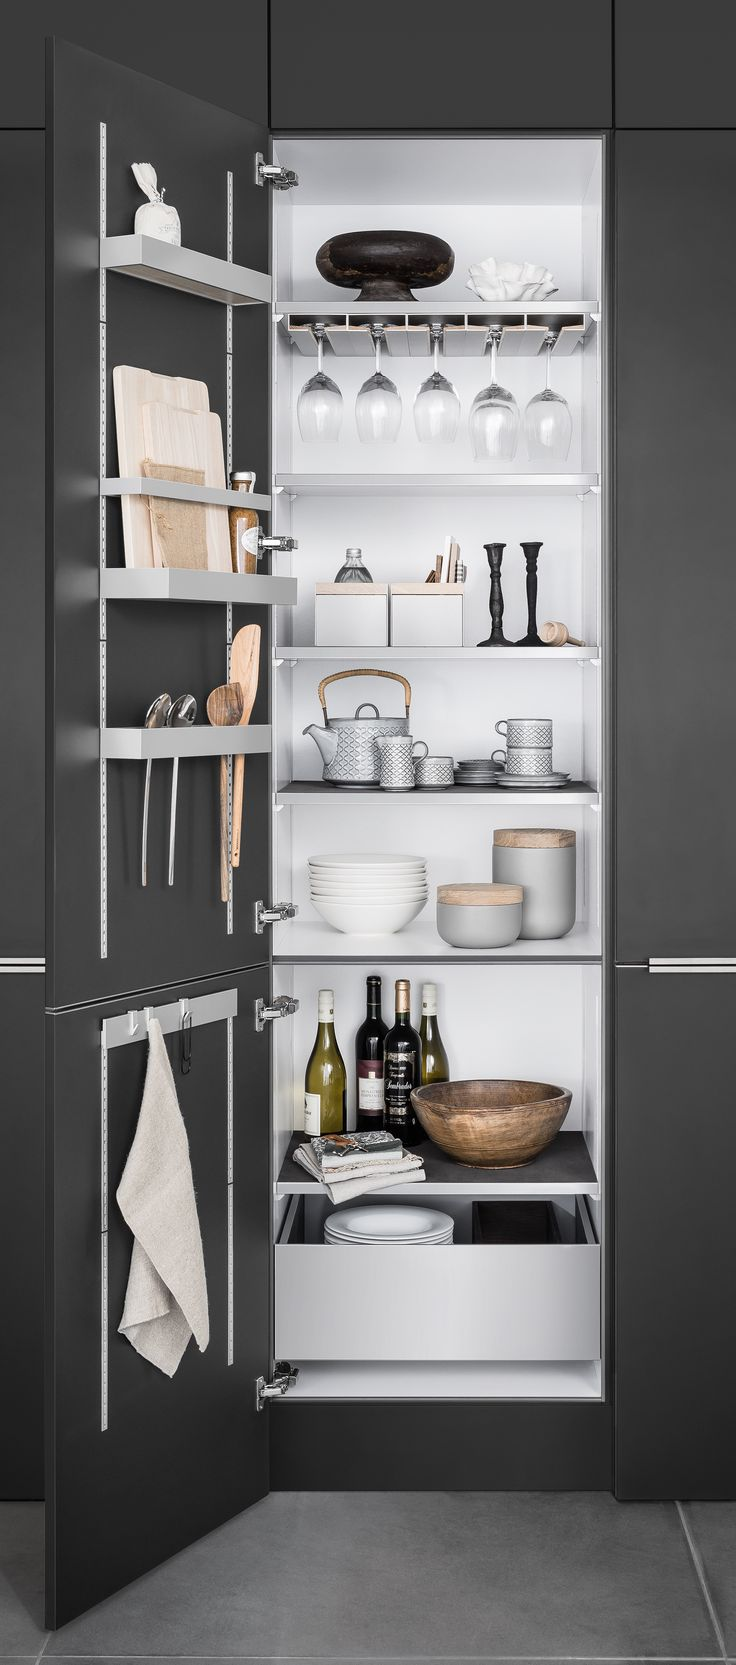 Kitchen cabinet storage from SieMatic of Germany | Remodelista